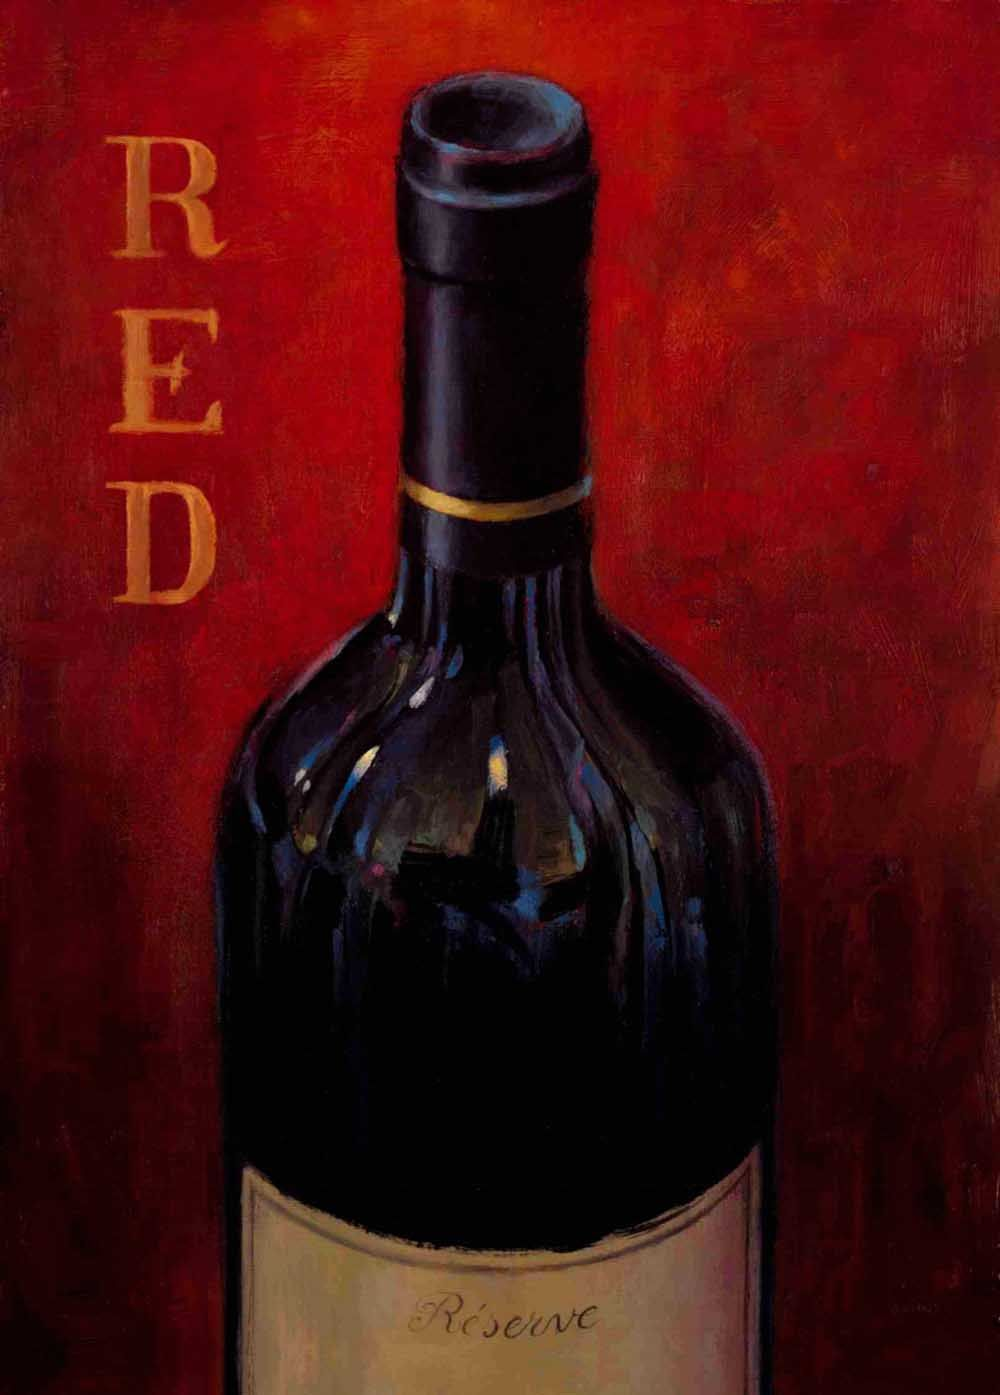 Cb053 Printed Oil Painting On Canvas Wal Art Pictures For Home Decor As Unique Gift Cup Bottle Of Bottle Painting Painted Wine Bottles Oil Painting On Canvas